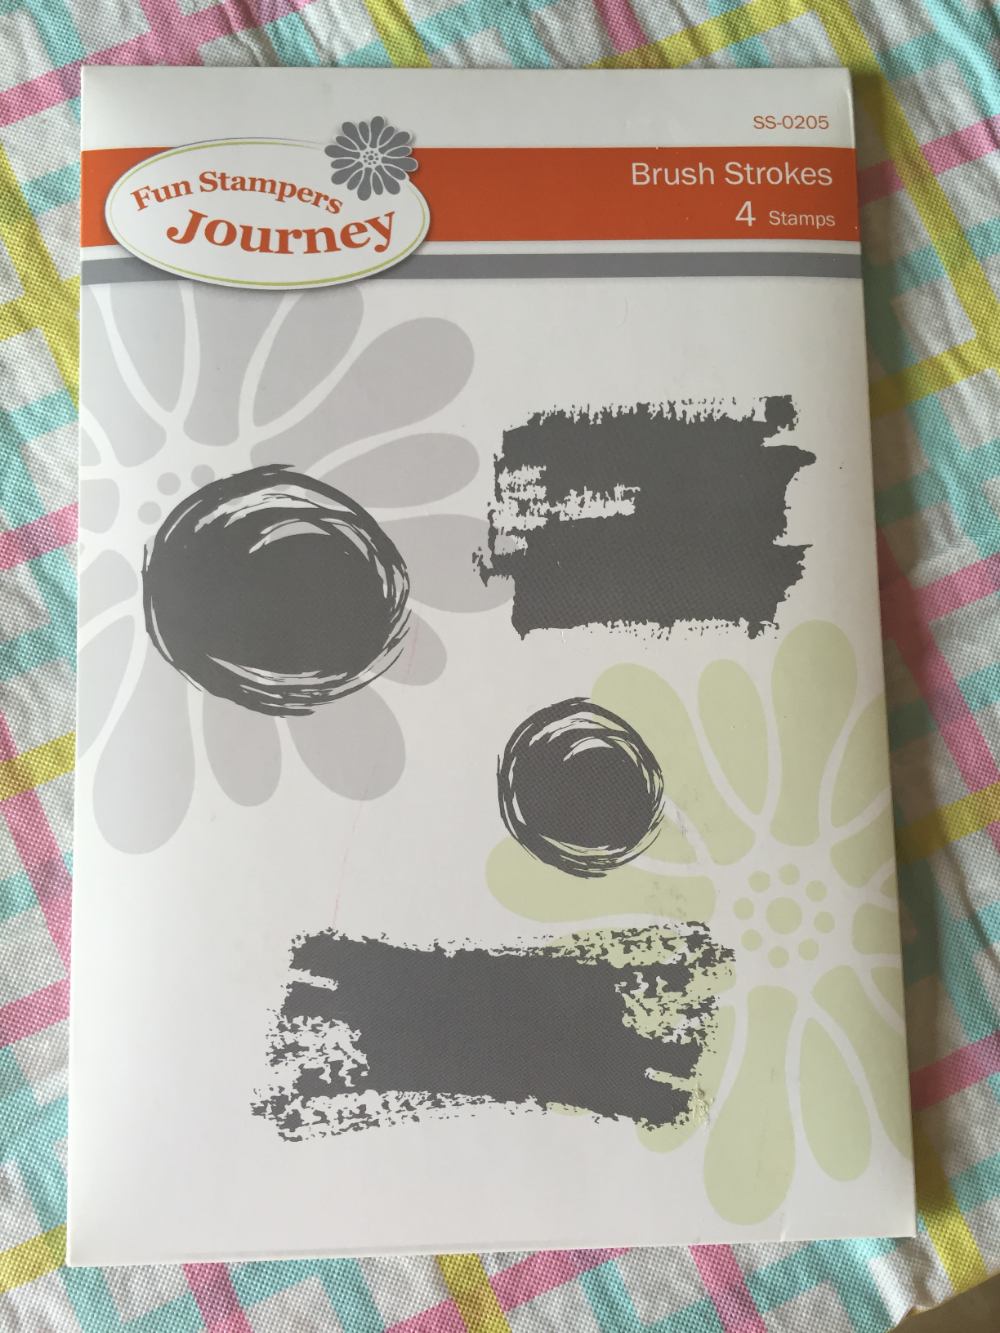 Fun Stampers Journey Brush Strokes item number SS-02015